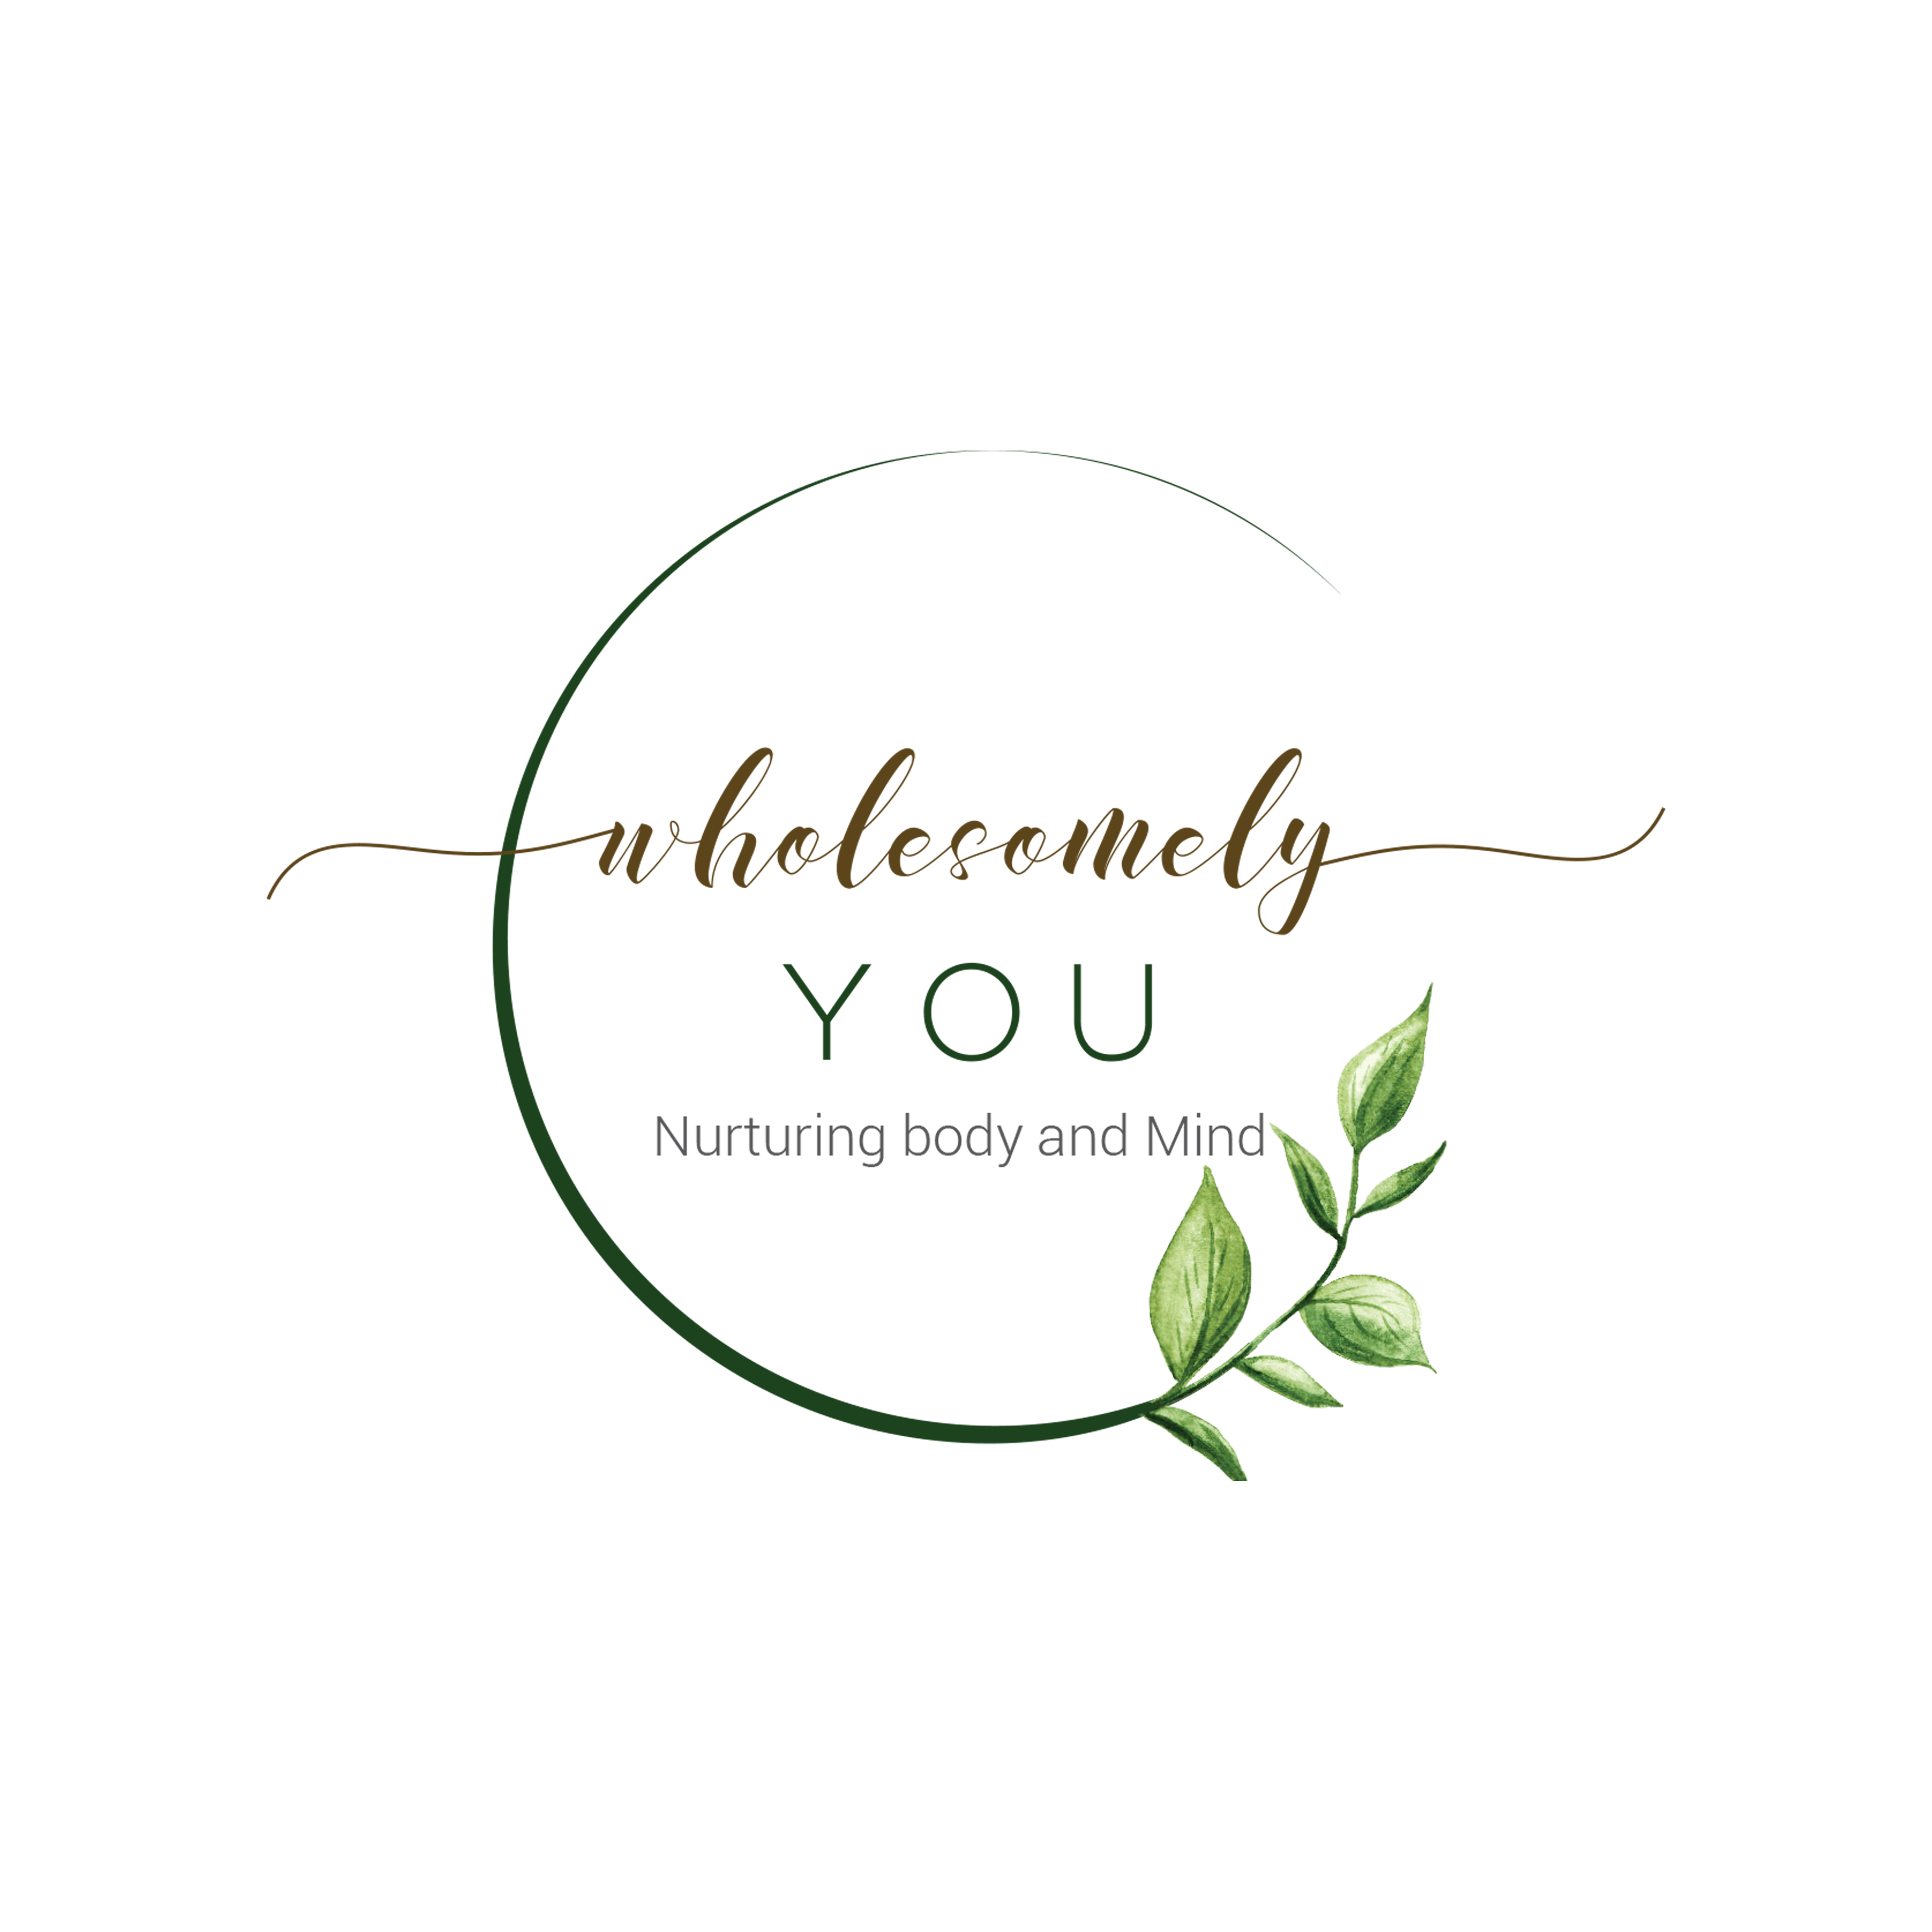 Wholesomely You - Ayan Hassan